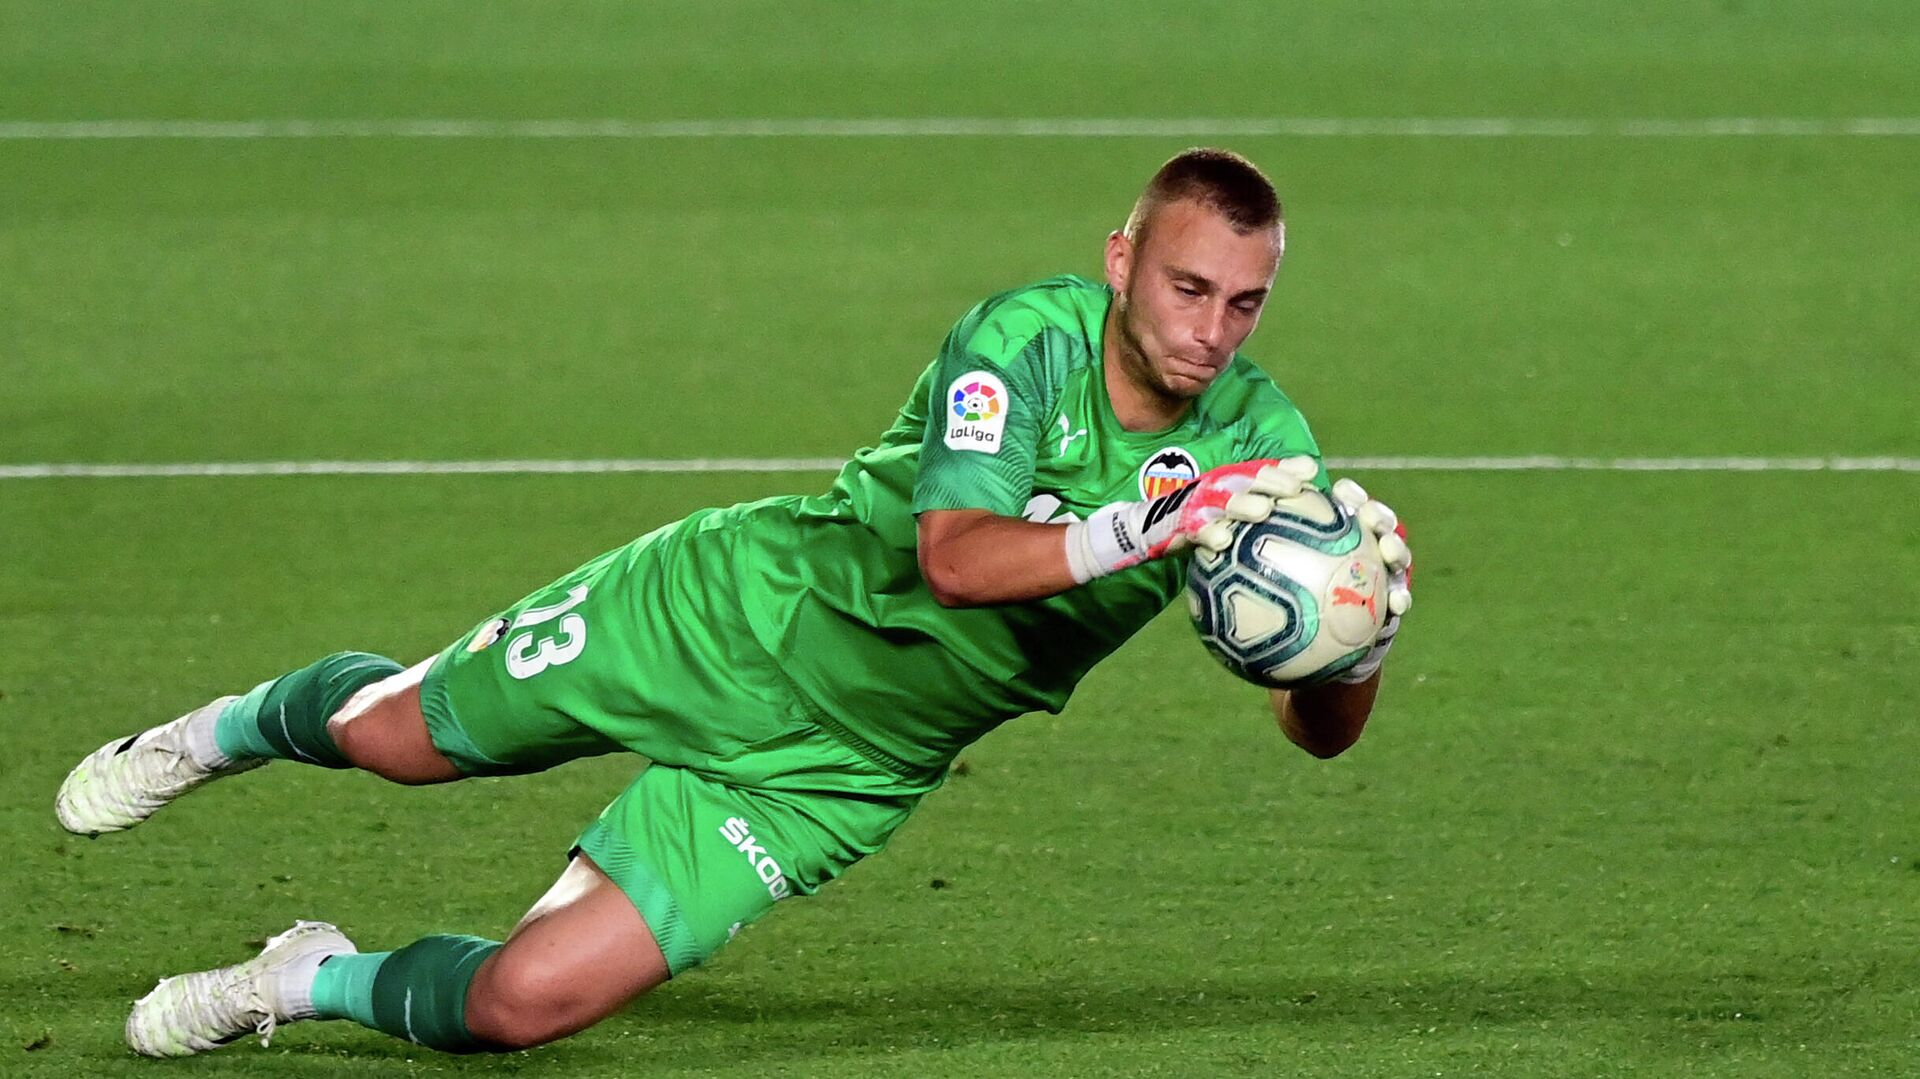 Valencia's Dutch goalkeeper Jasper Cillessen stops the ball during the Spanish league football match between Real Madrid CF and Valencia CF at the Alfredo di Stefano stadium in Valdebebas, on the outskirts of Madrid, on June 18, 2020. (Photo by JAVIER SORIANO / AFP) - РИА Новости, 1920, 26.03.2021